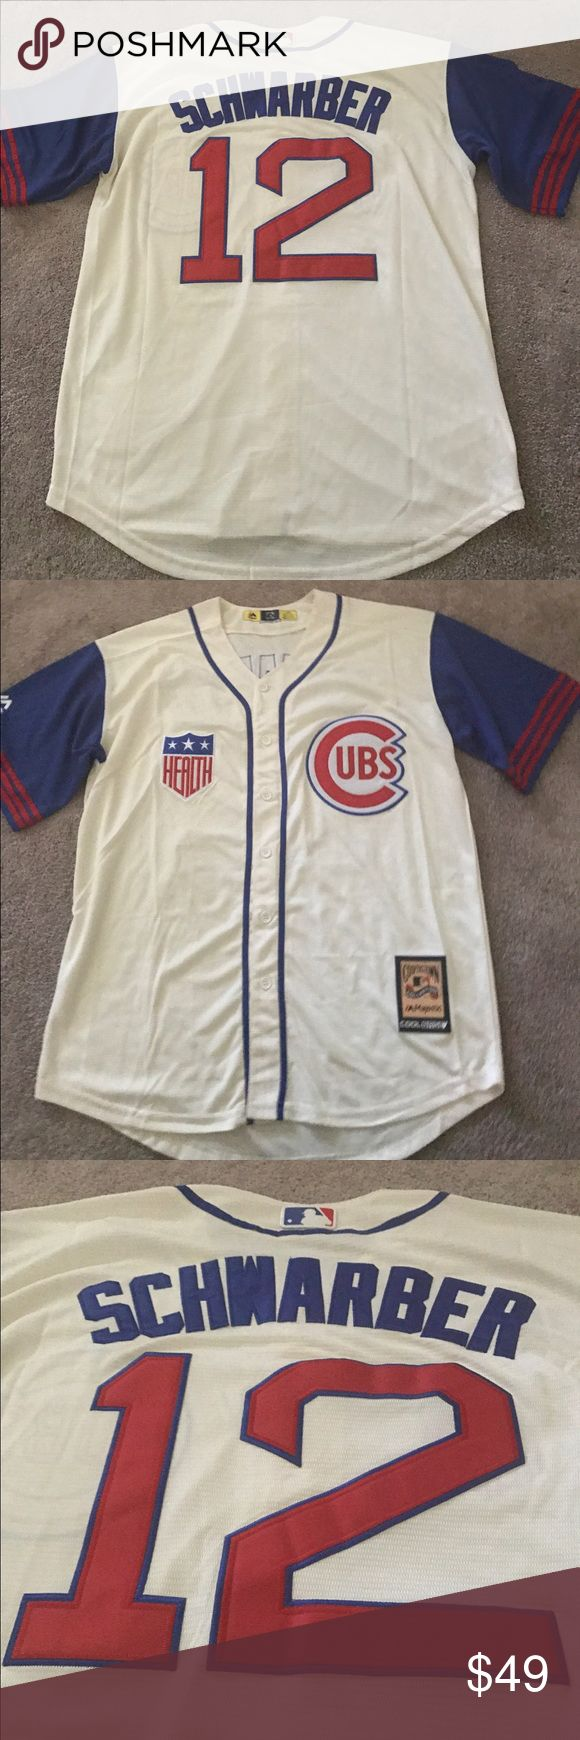 Kyle Schwarber Cubs 1942 Throwback jersey (L) Chicago Cubs Kyle Schwarber 1942 Throwback jersey. Brand new with tags, fully embroidered Majestic Athletic Cooperstown Collection jersey. Please check my other listings for more Cubs merchandise! Many more styles/sizes available for men, women and kids! Majestic Shirts Casual Button Down Shirts